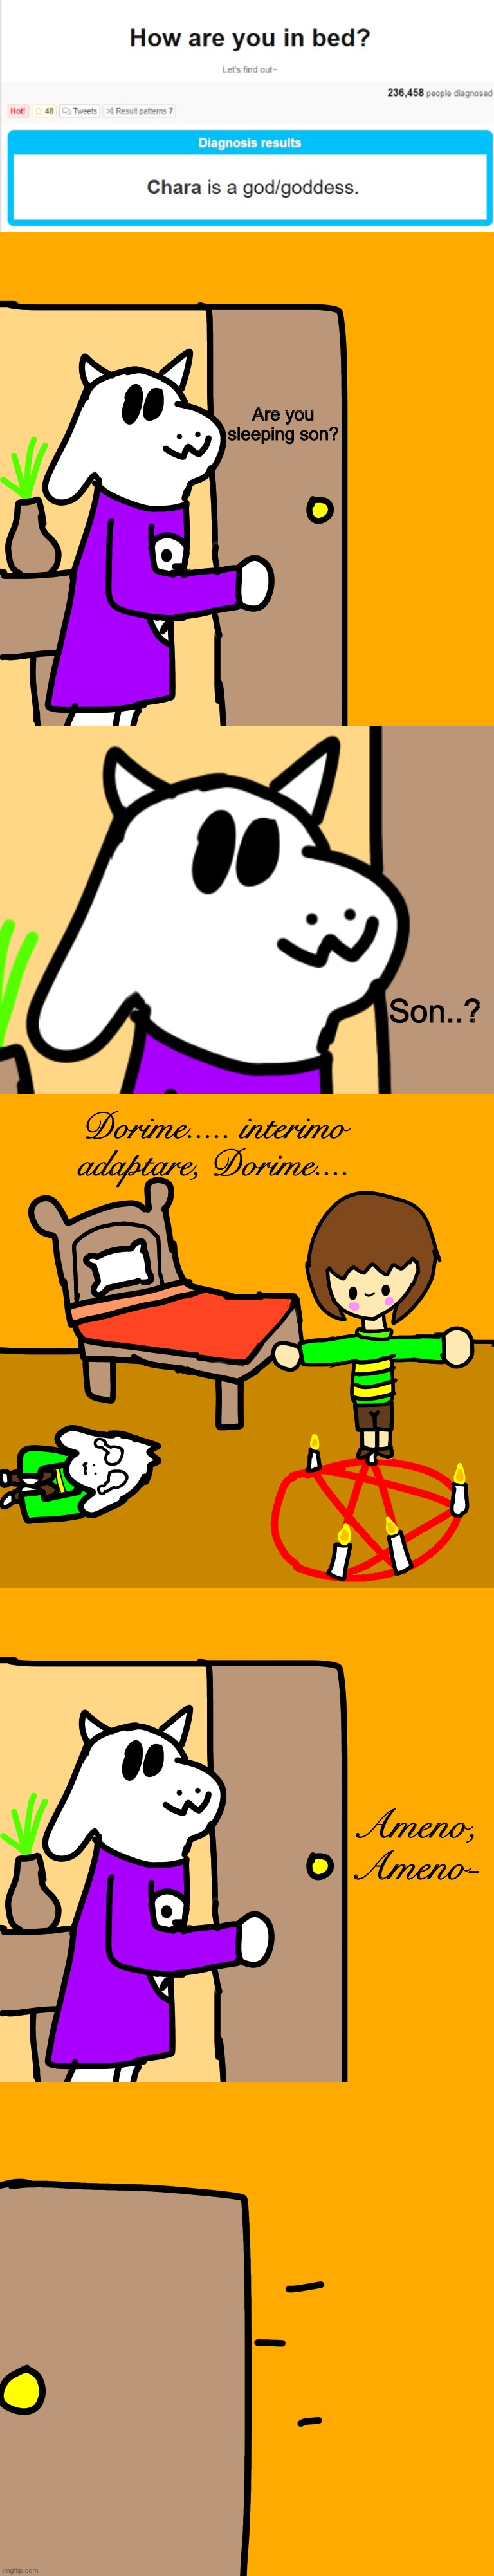 How Chara sleep |  Are you sleeping son? Son..? Dorime..... interimo adaptare, Dorime.... Ameno, Ameno- | image tagged in memes,funny,chara,undertale,asriel,bed | made w/ Imgflip meme maker